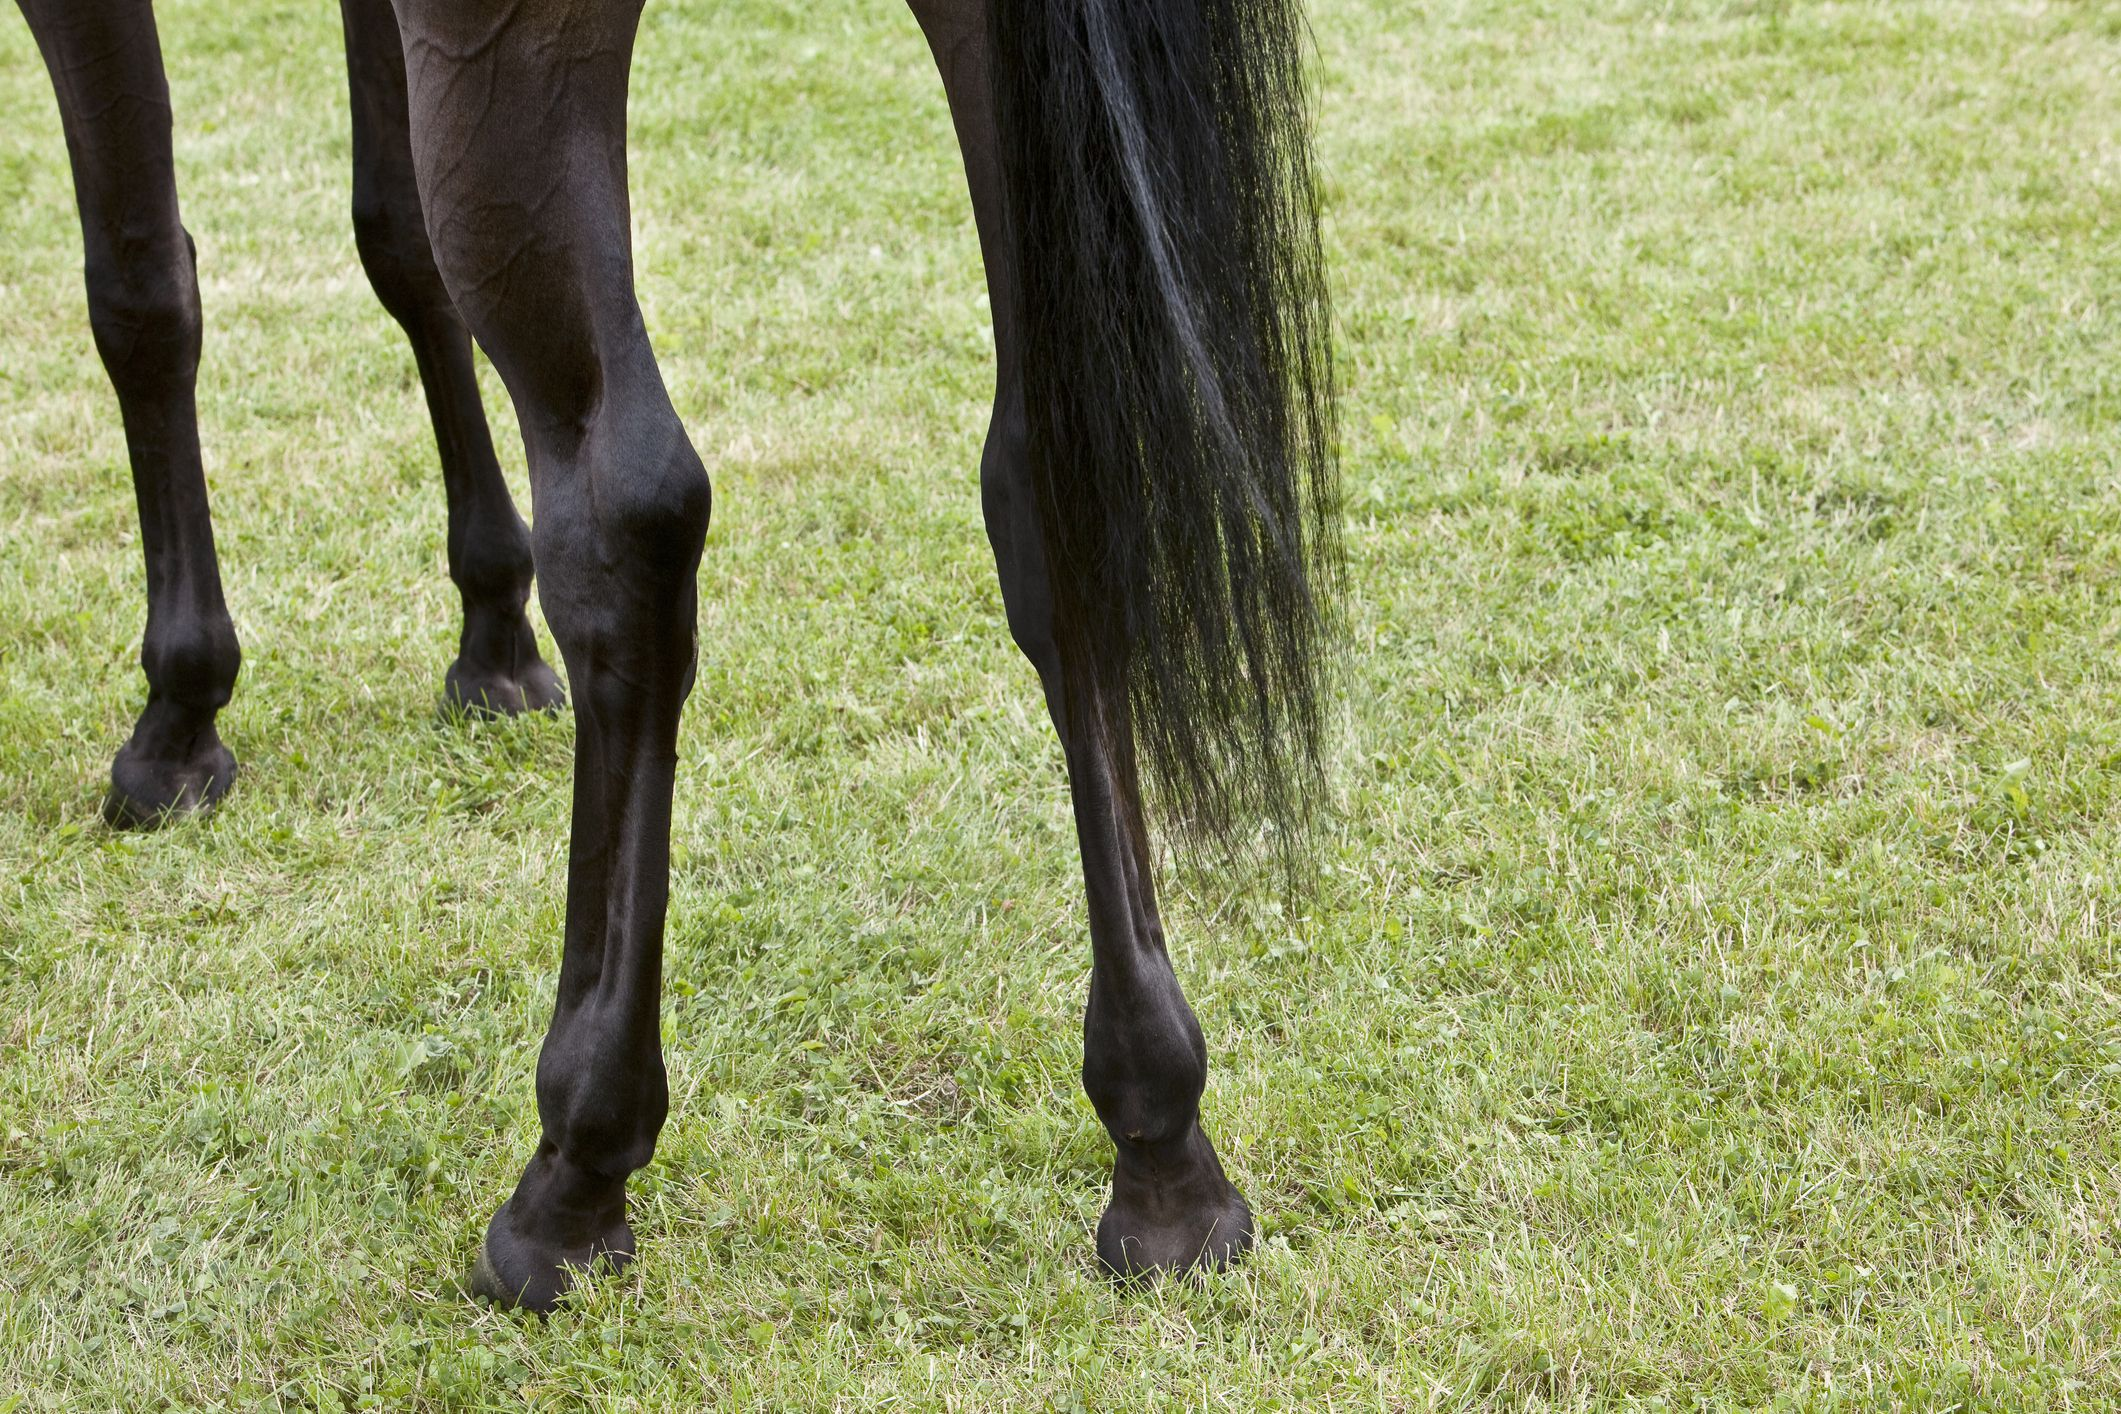 Close up of a horse's hind legs